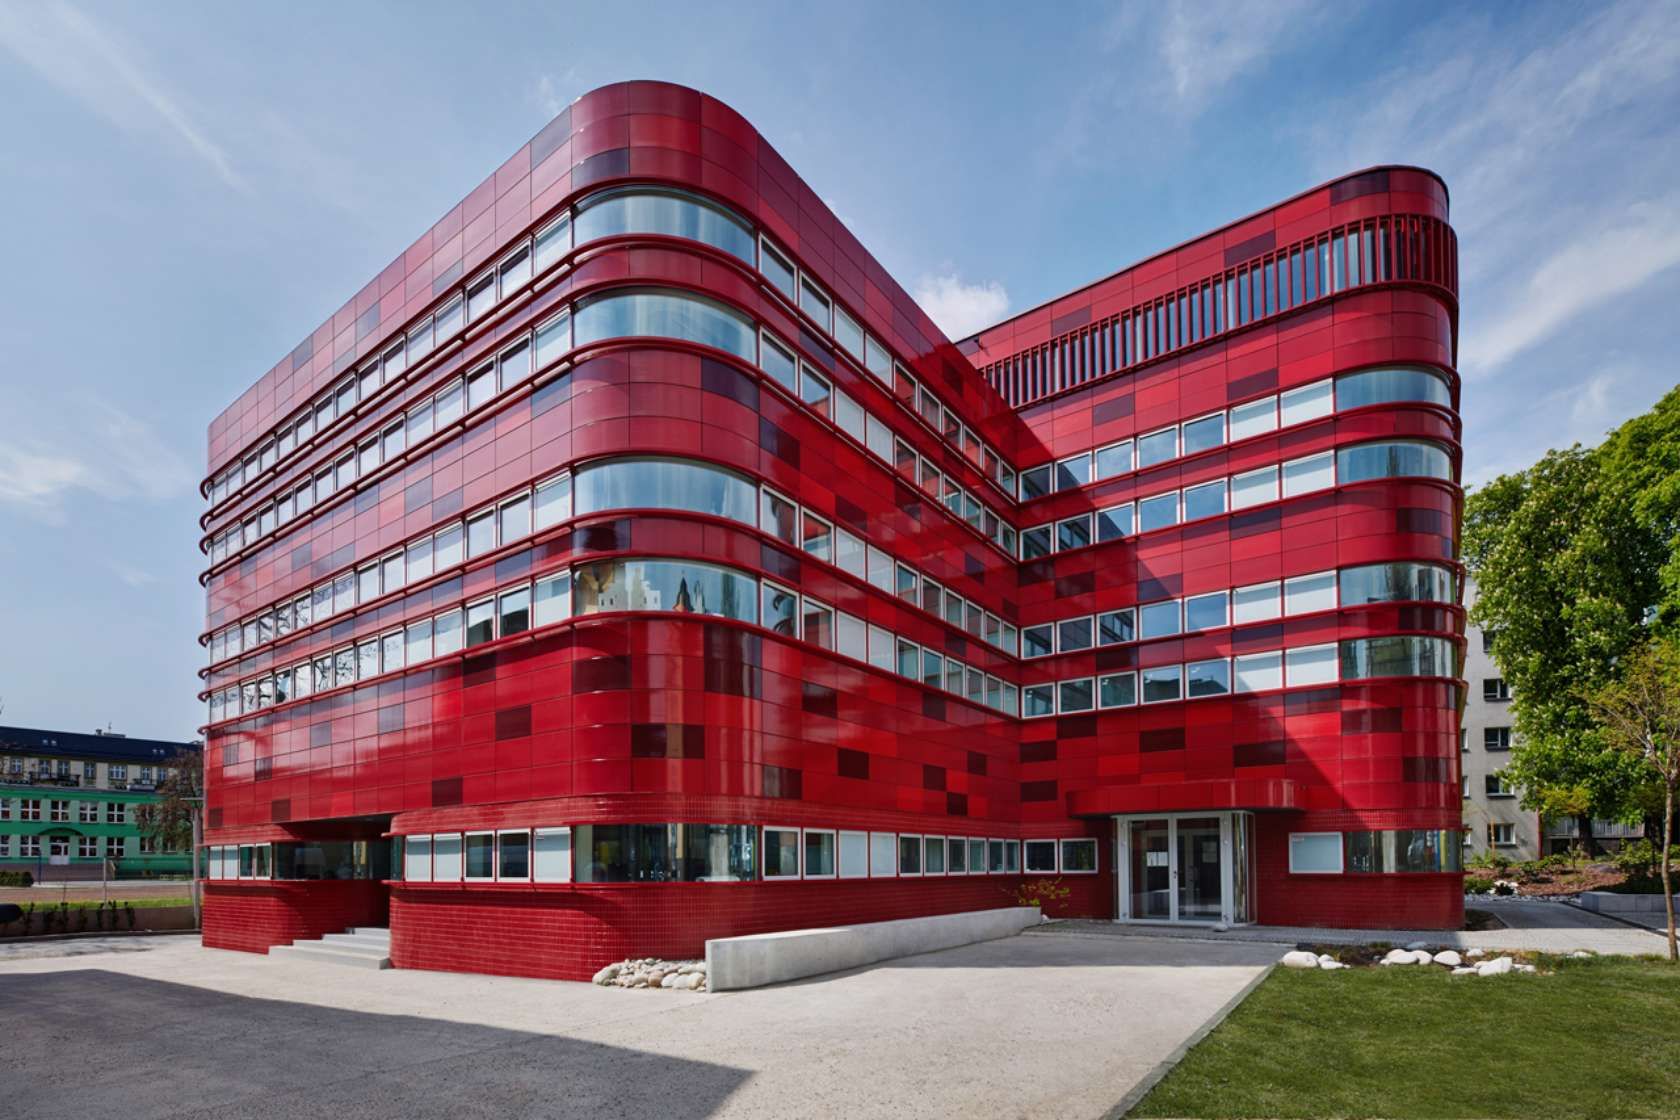 All Blood Donation Centres Should Be This Shade of Red